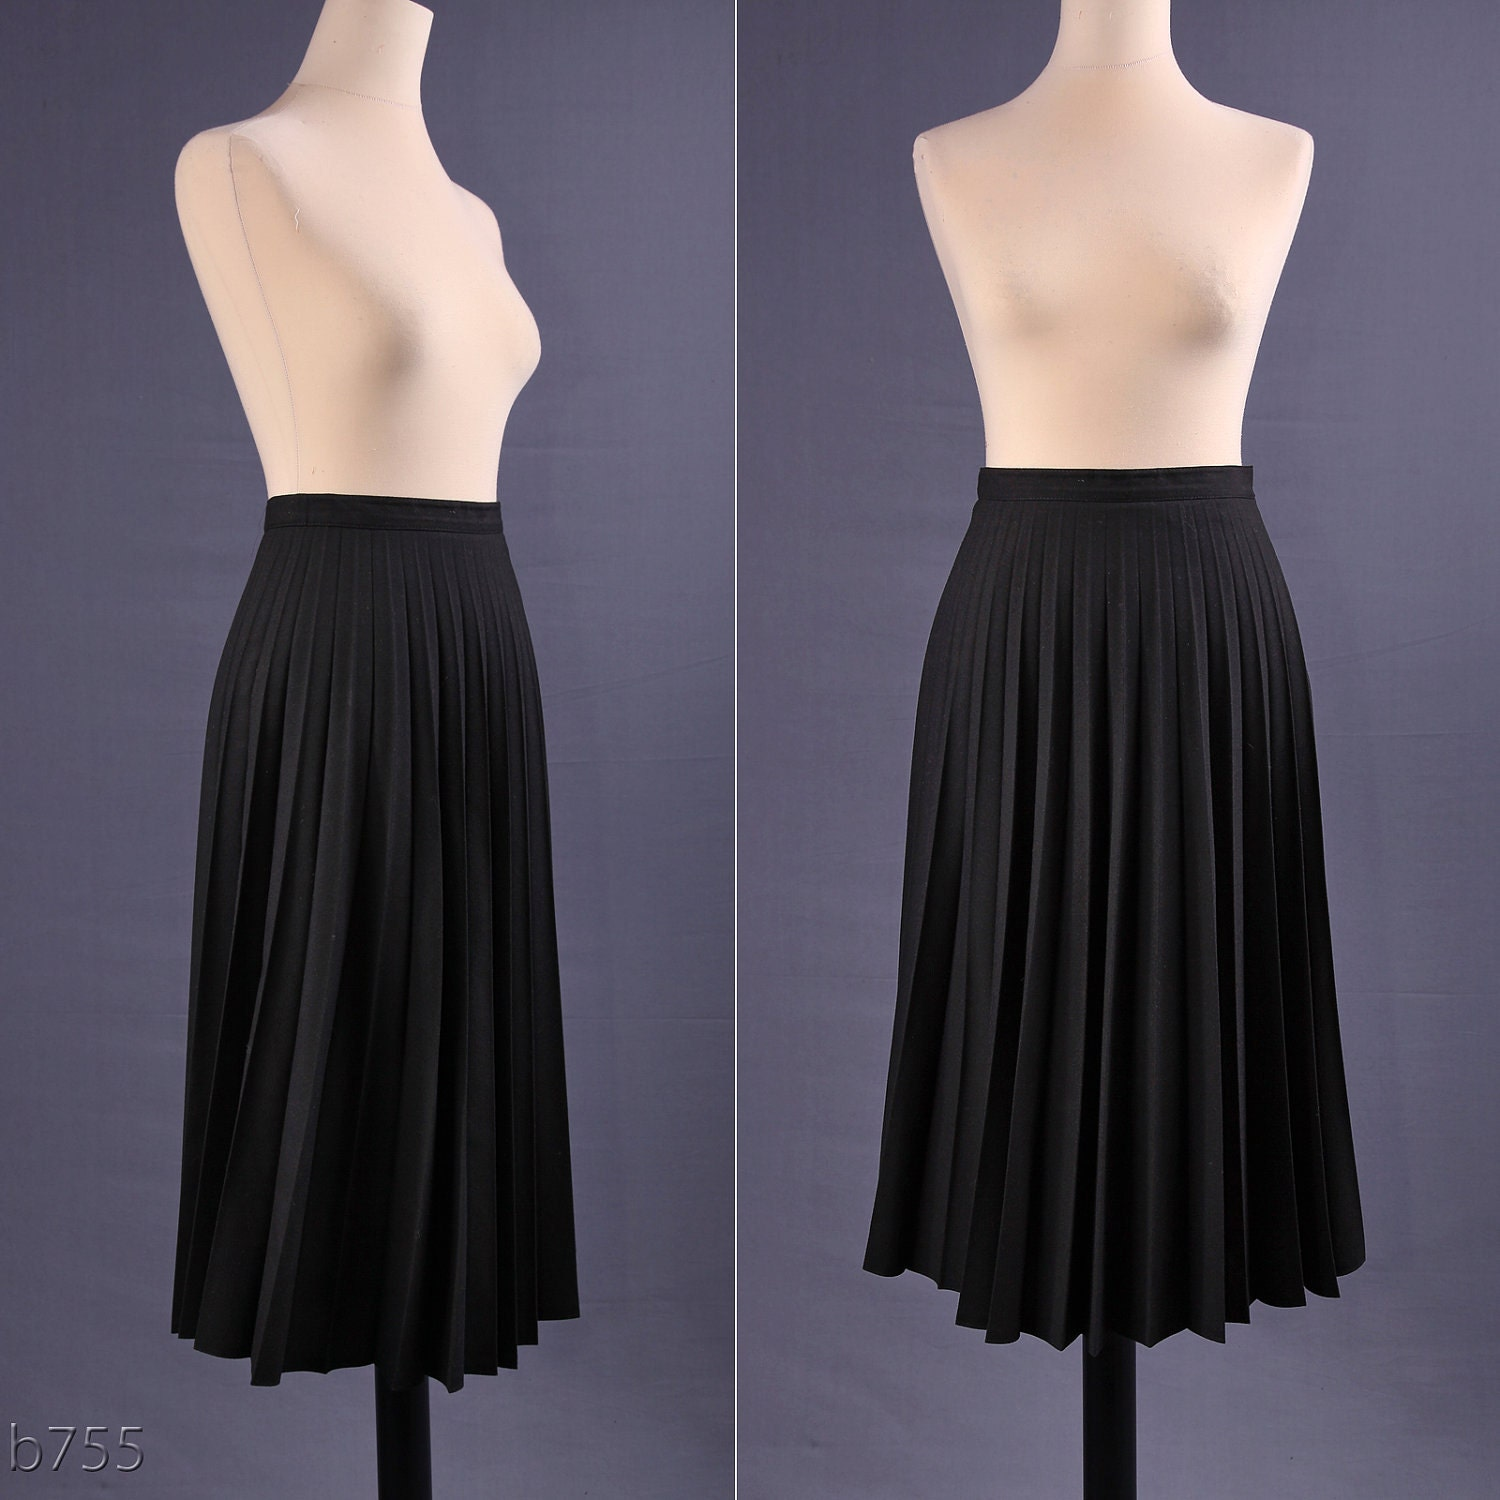 80s black midi skirt accordion pleated skirt m by